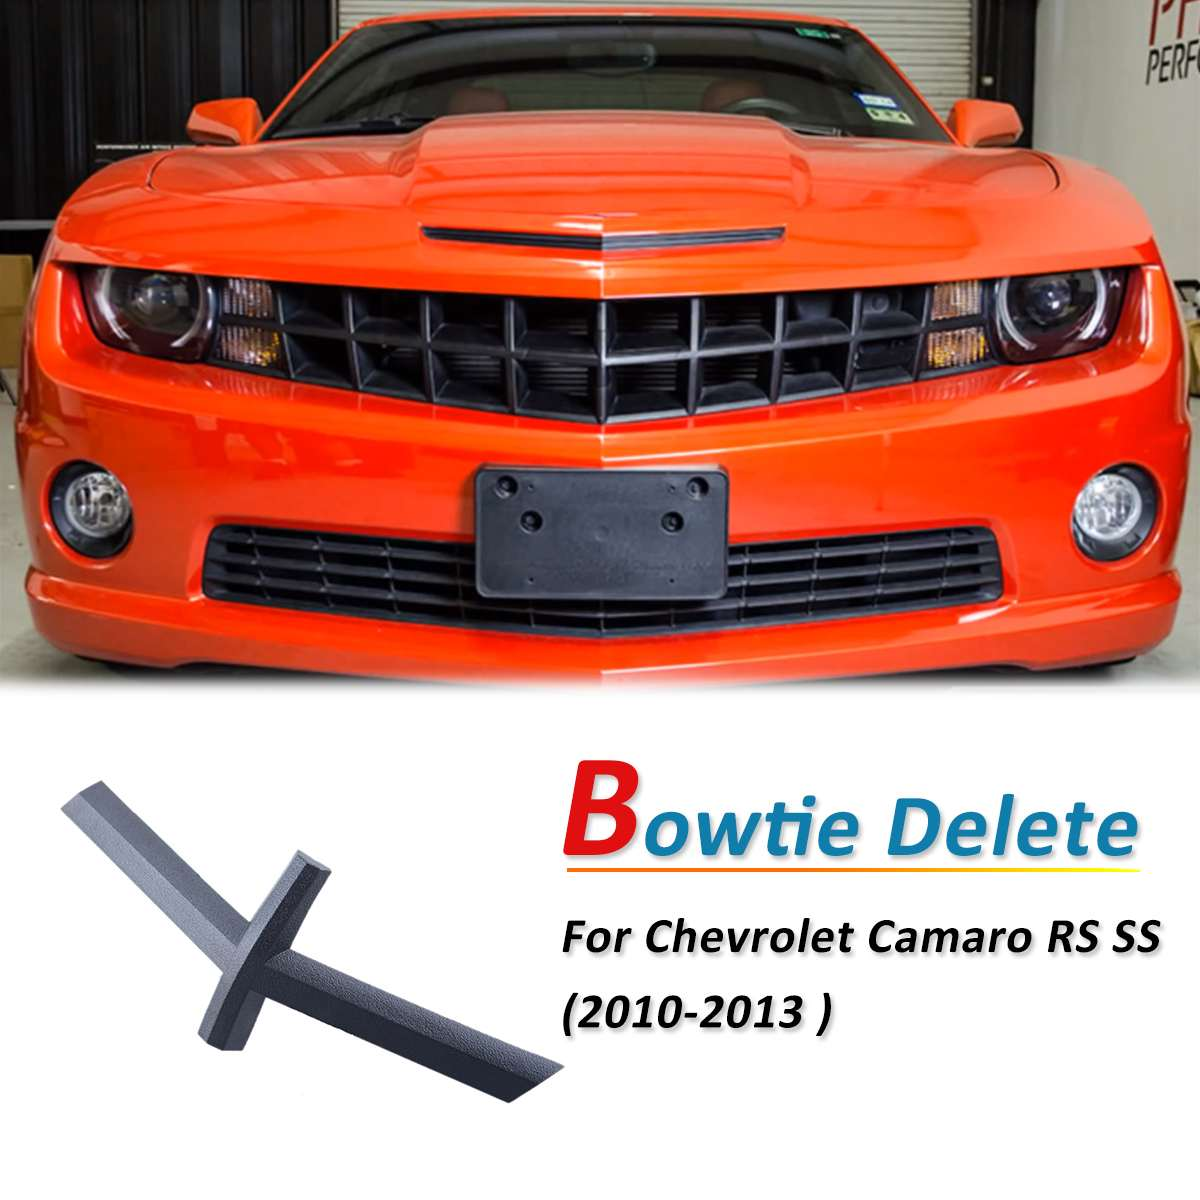 US $13 34 44% OFF Black Bowtie Delete Grill Cross Cover Decoration Emblem  For Chevrolet Camaro RS SS 5th Gen 2010 2011 2012 2013-in Racing Grills  from